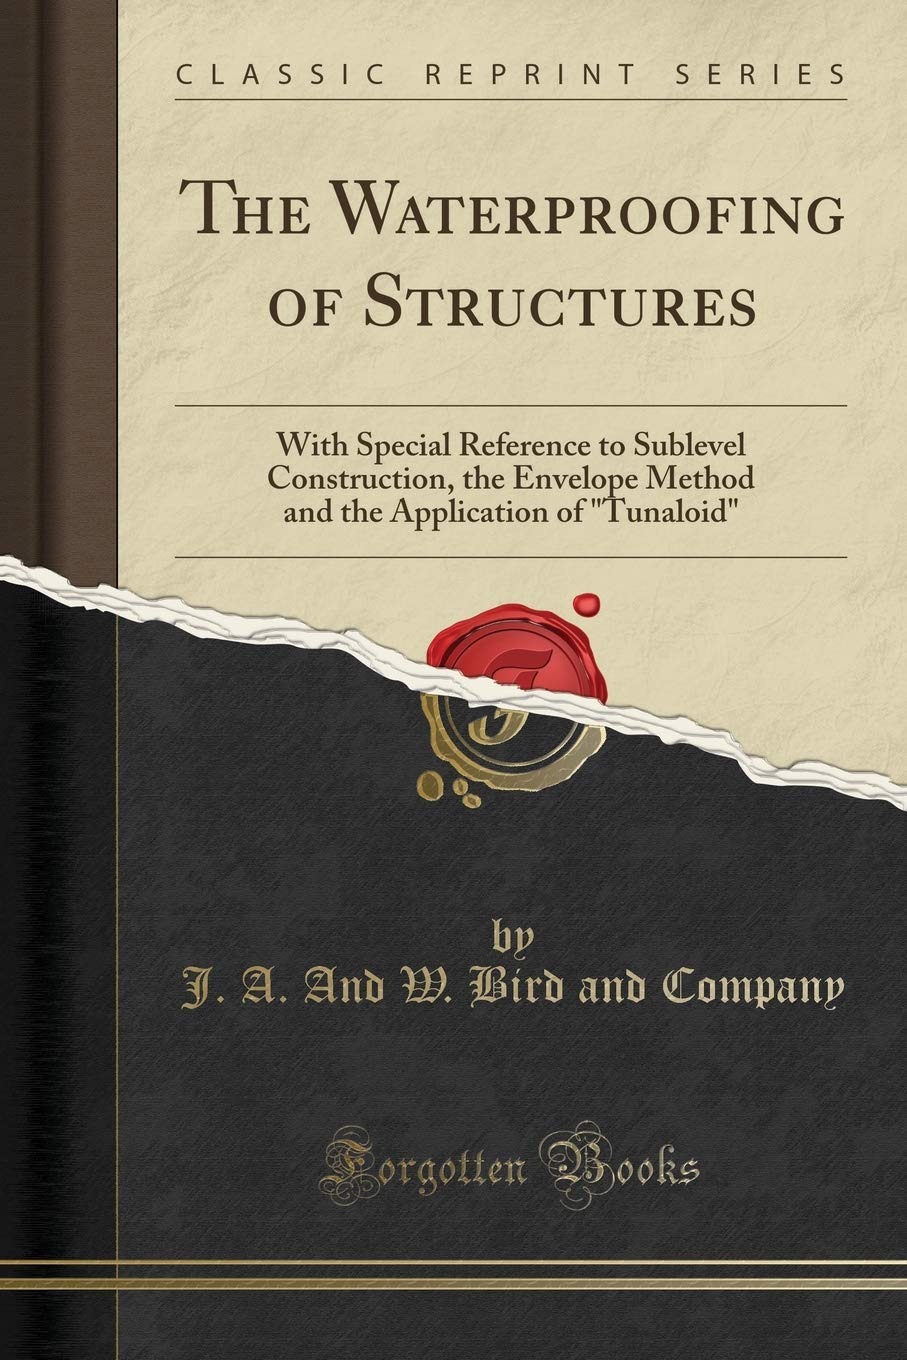 """Read Online The Waterproofing of Structures: With Special Reference to Sublevel Construction, the Envelope Method and the Application of """"Tunaloid"""" (Classic Reprint) PDF"""